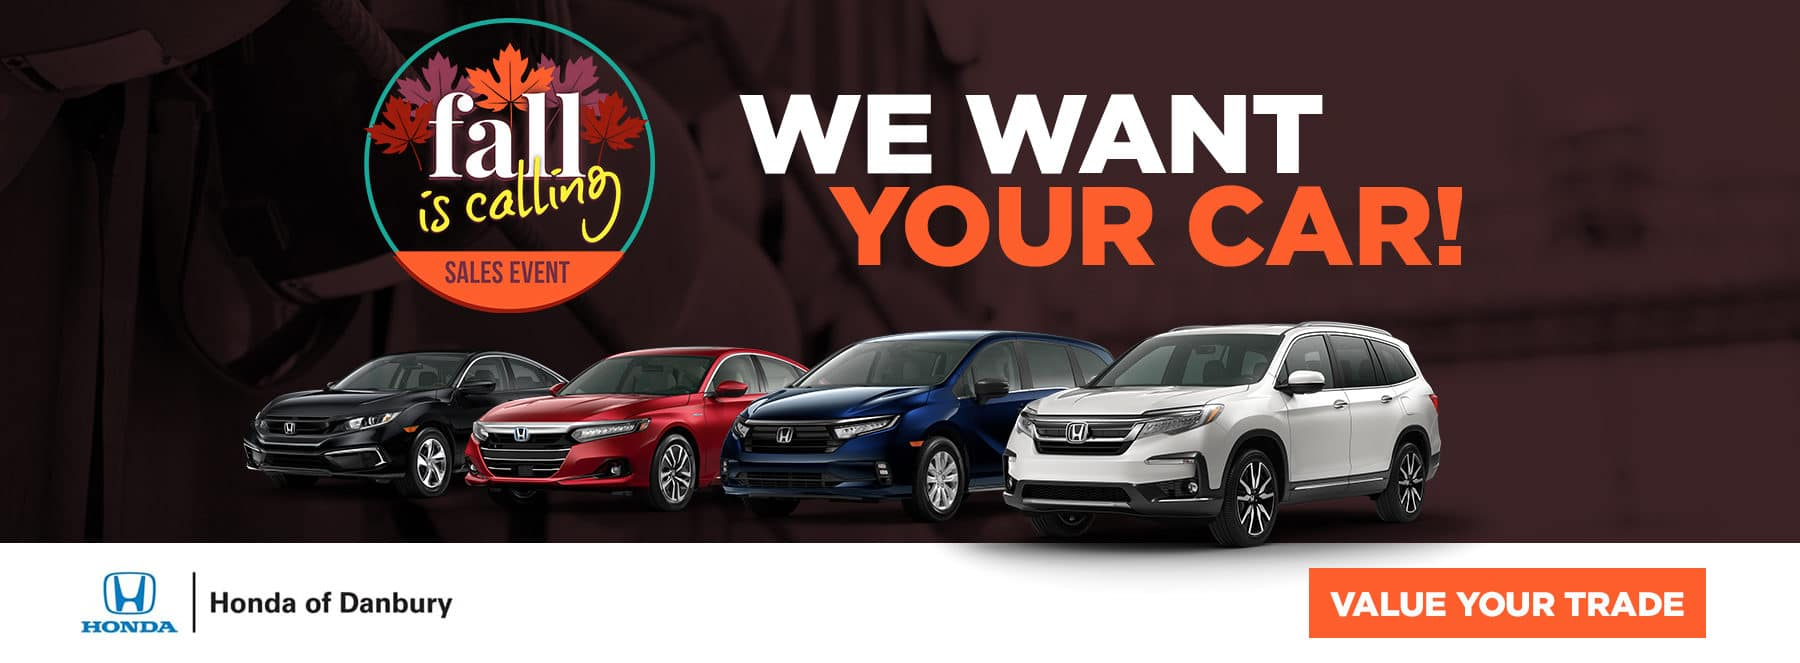 We want your car - Value Your Trade